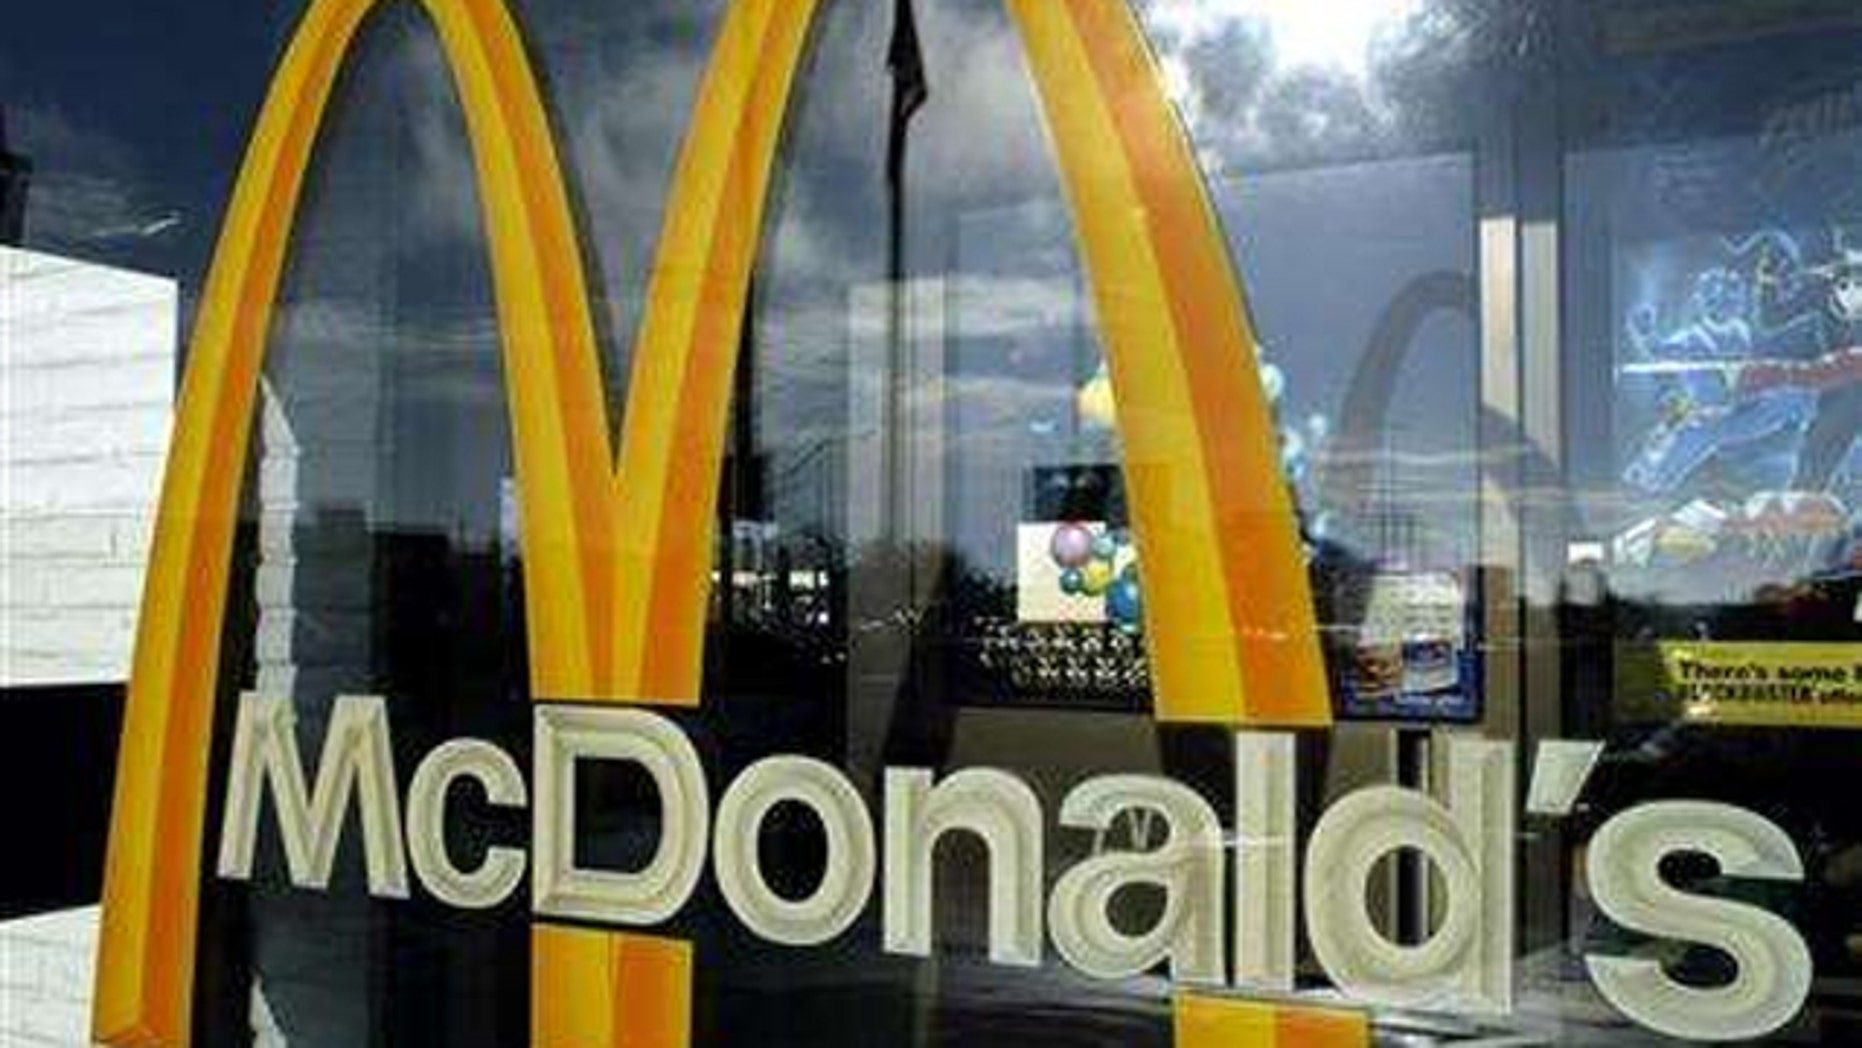 McDonalds is the number one fast food chain in America, based on revenue.